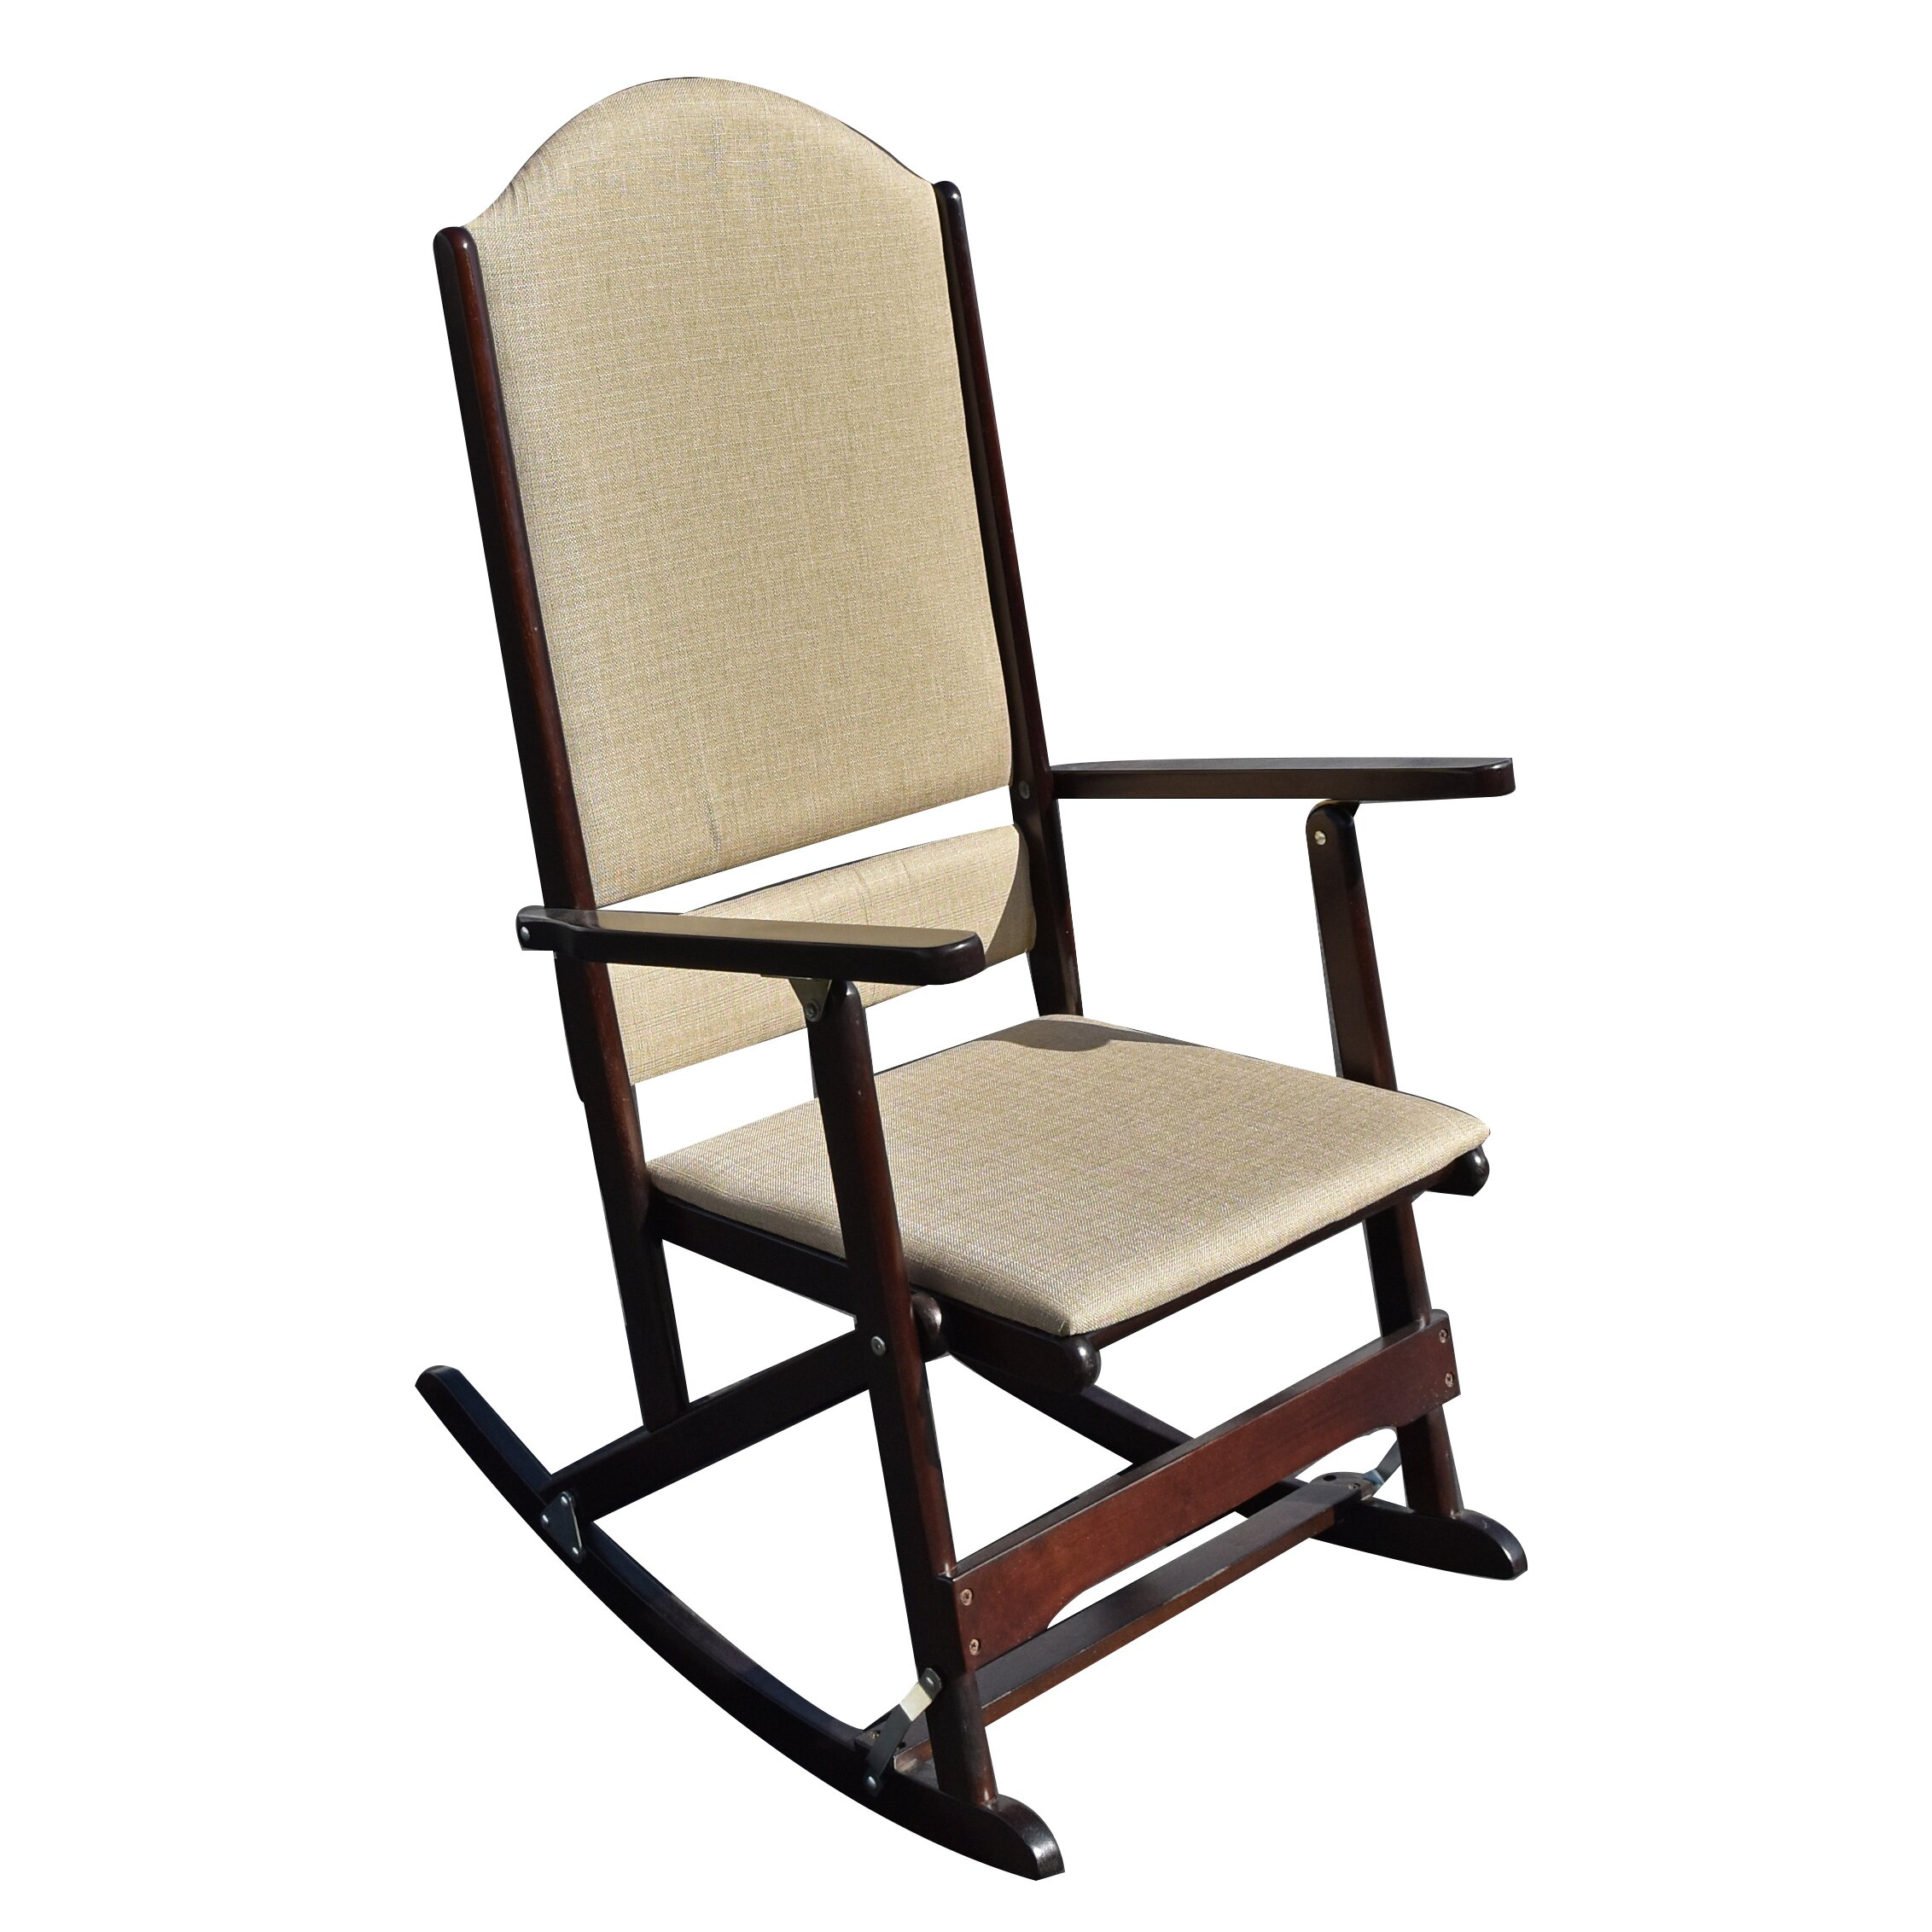 Rocking Chairs Sale Inspirations Home & Interior Design